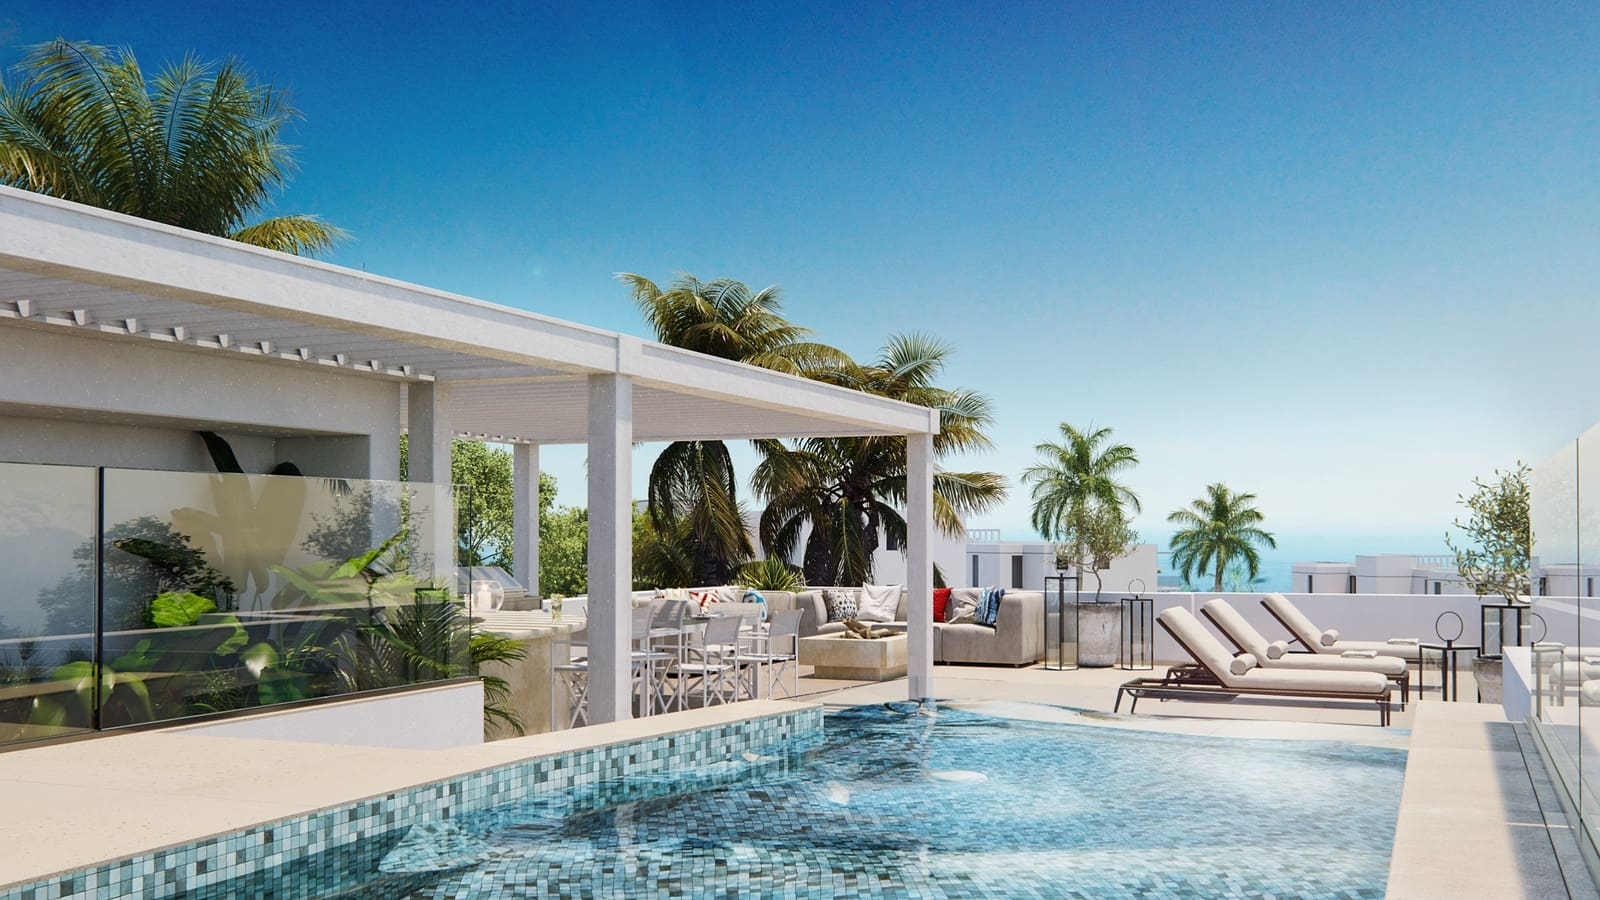 3 bedroom Apartment for sale in Marbella with pool garage - € 778,000 (Ref: 5931043)